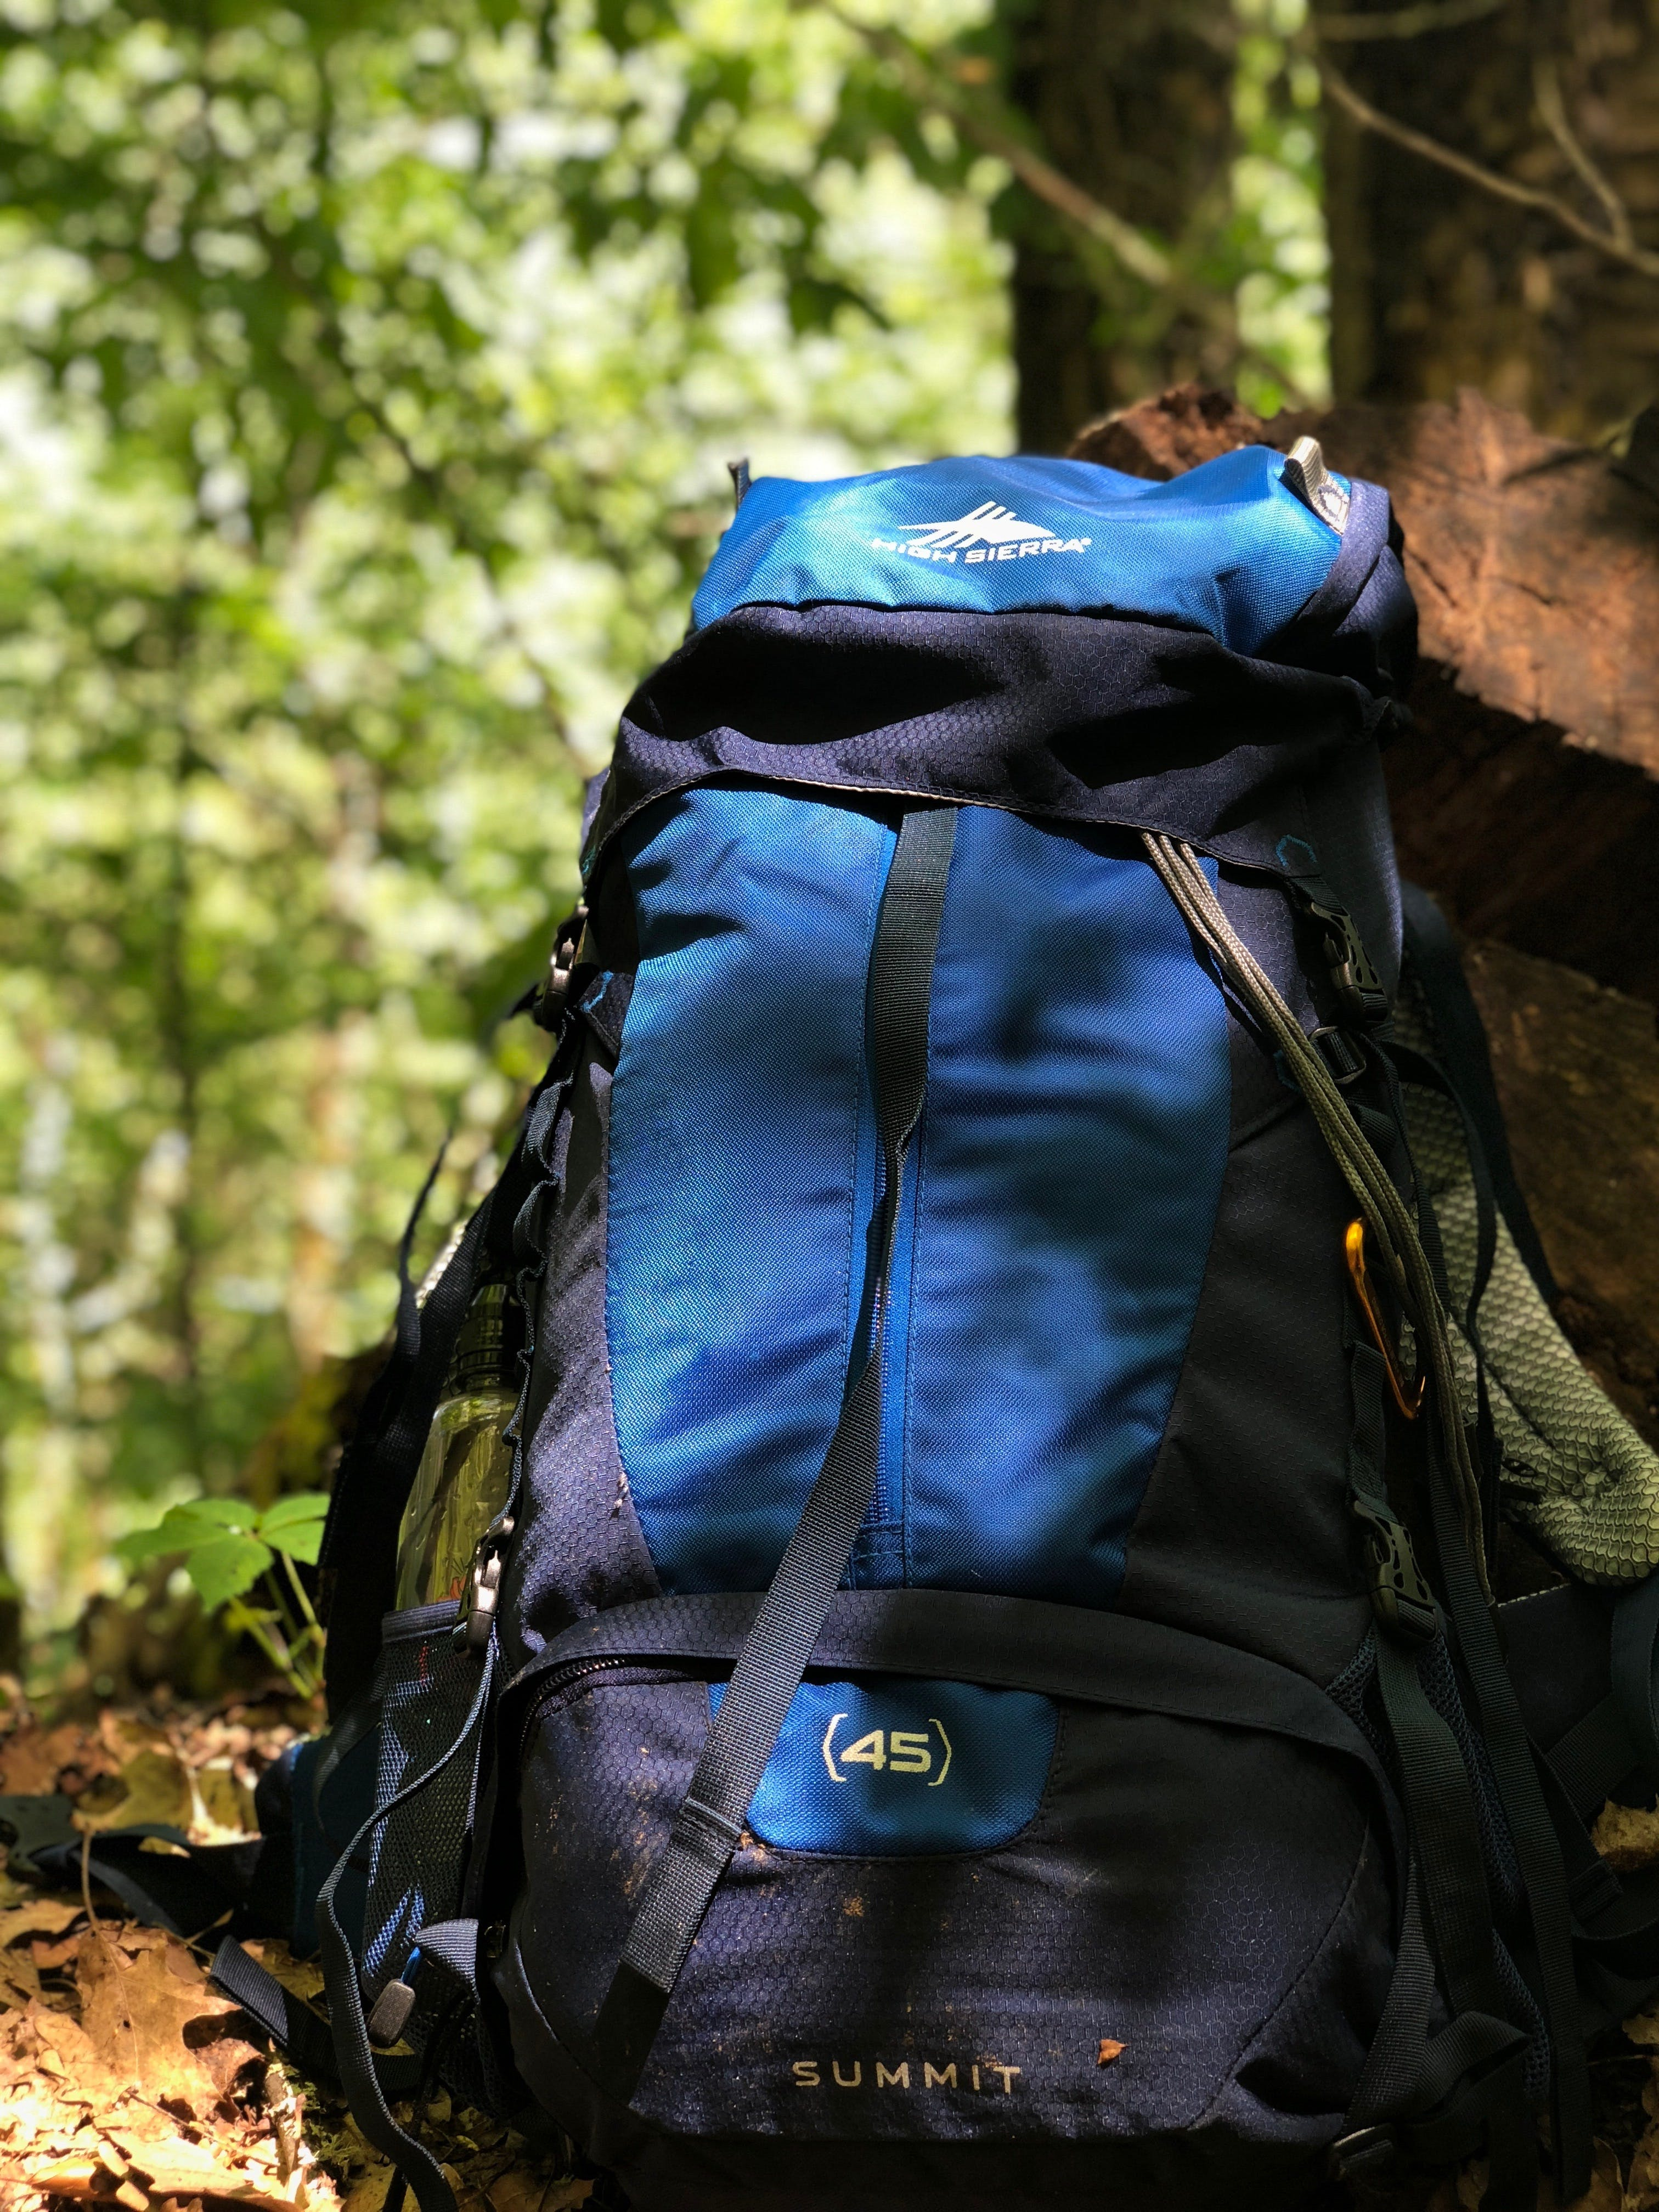 Free stock photo of backpacking, cherokee national forest, trails